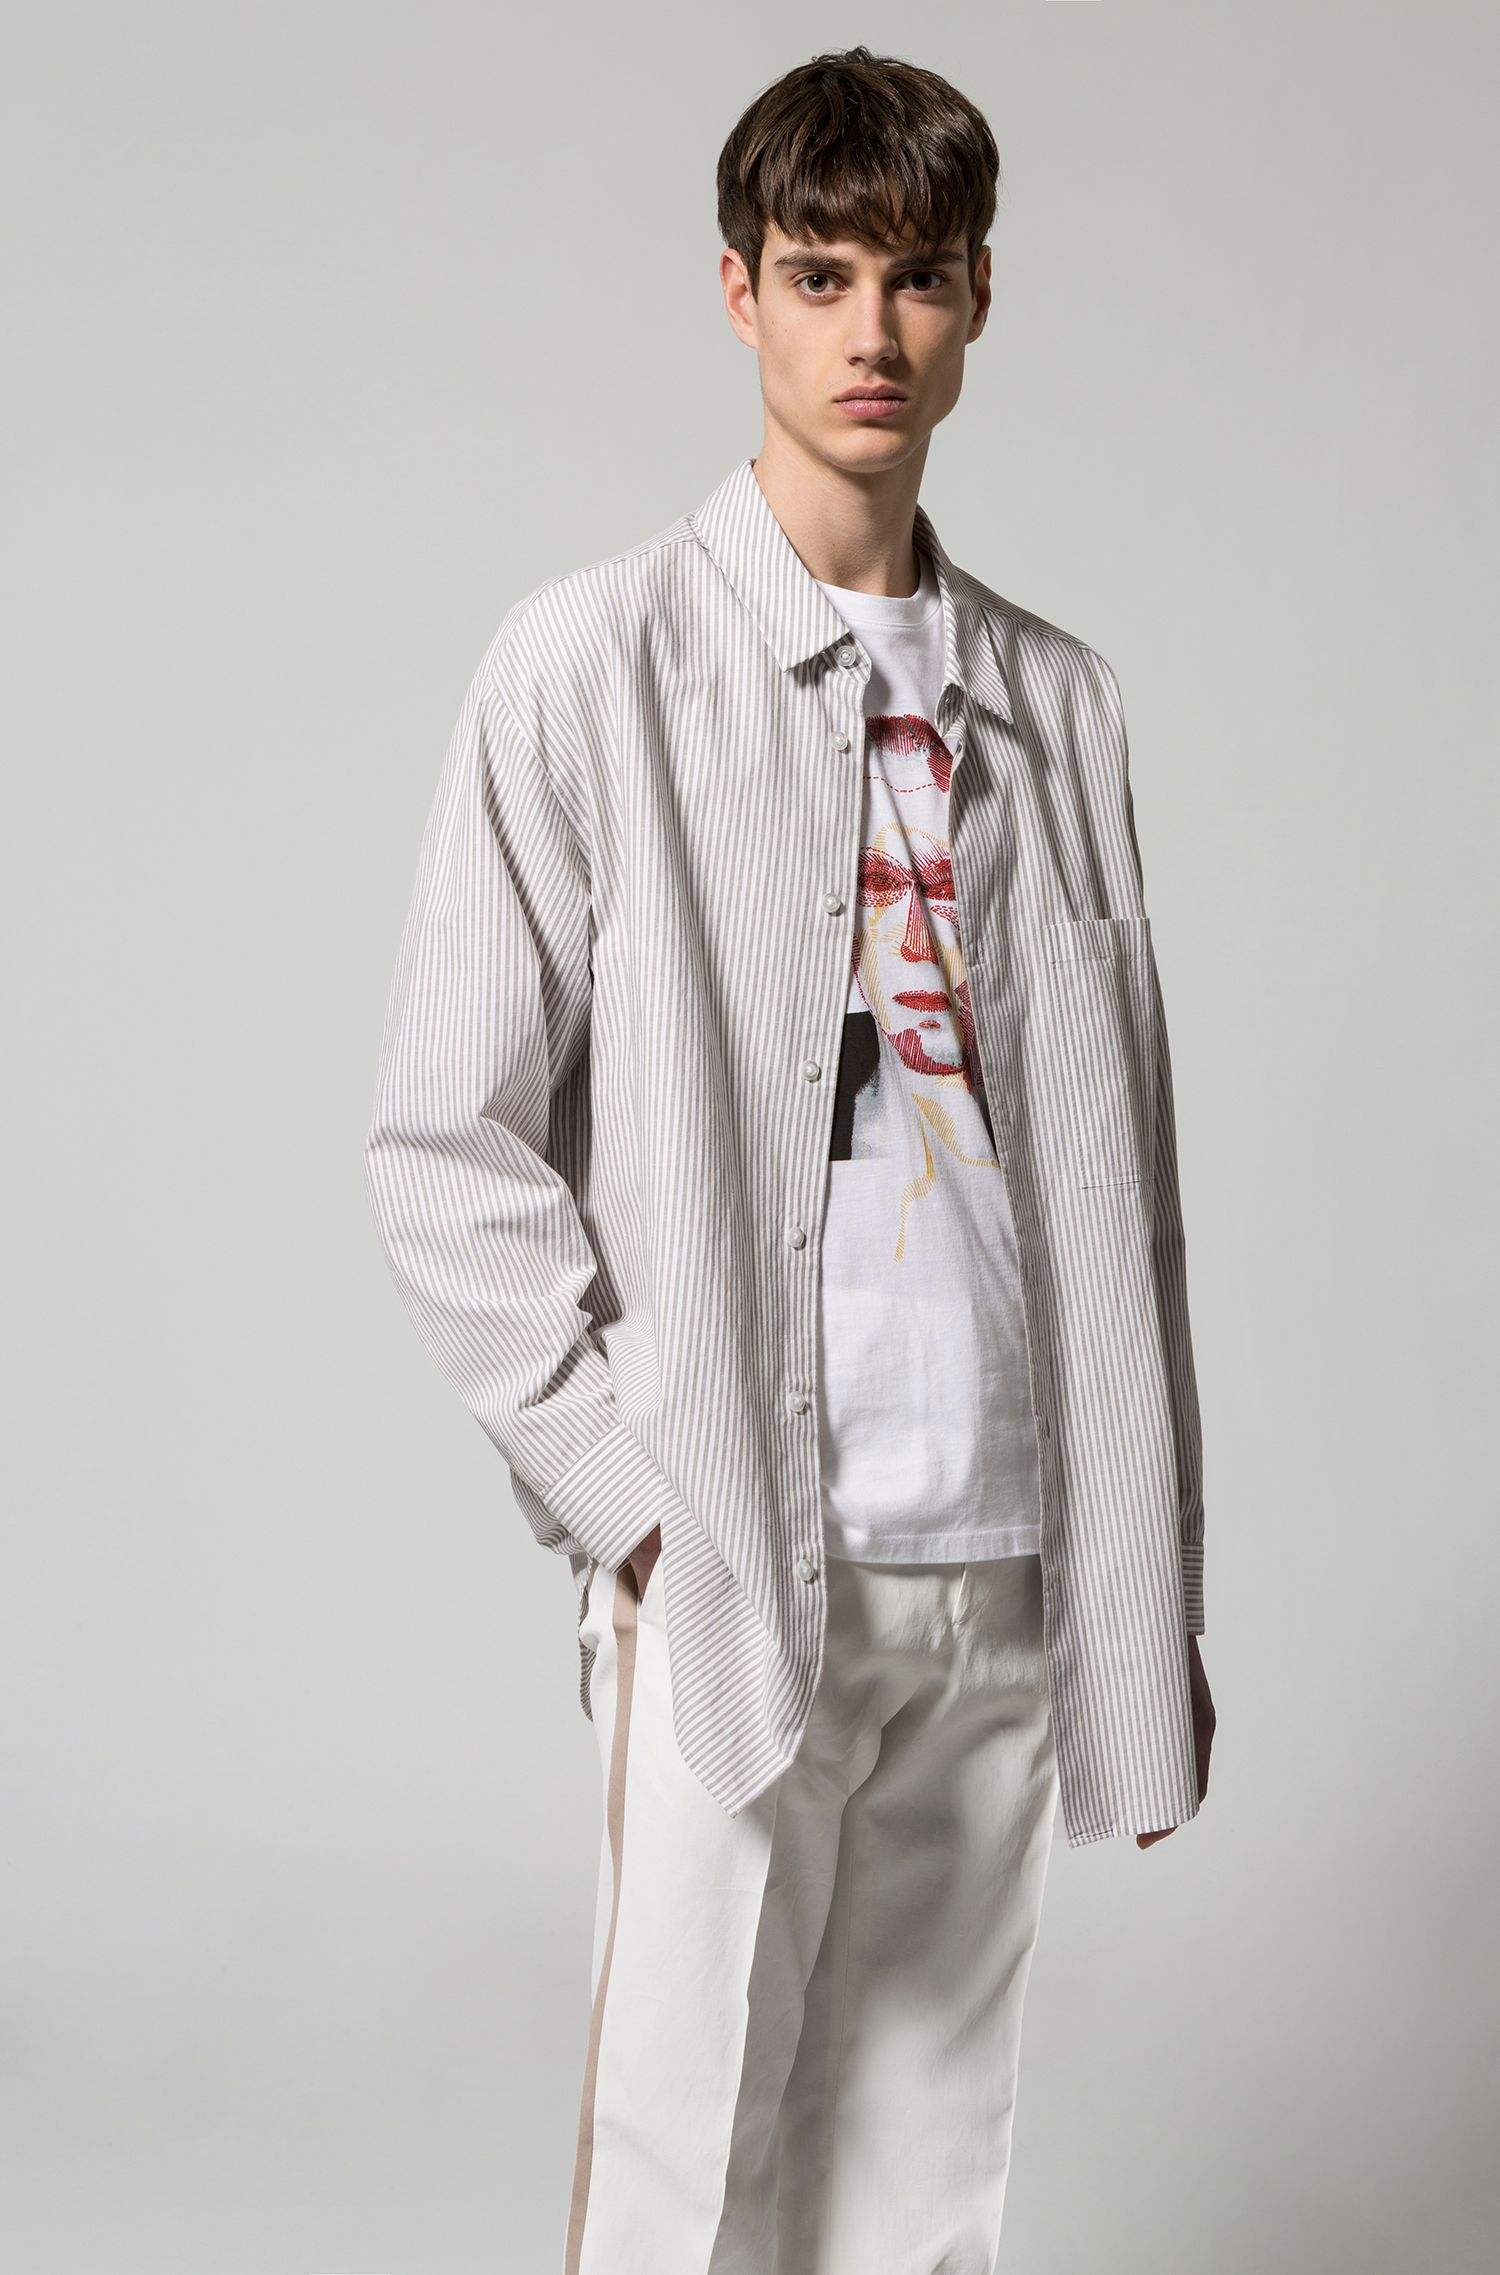 Runway Edition Linen Cotton Sport Shirt, Oversized Fit | Erilio , Light Beige